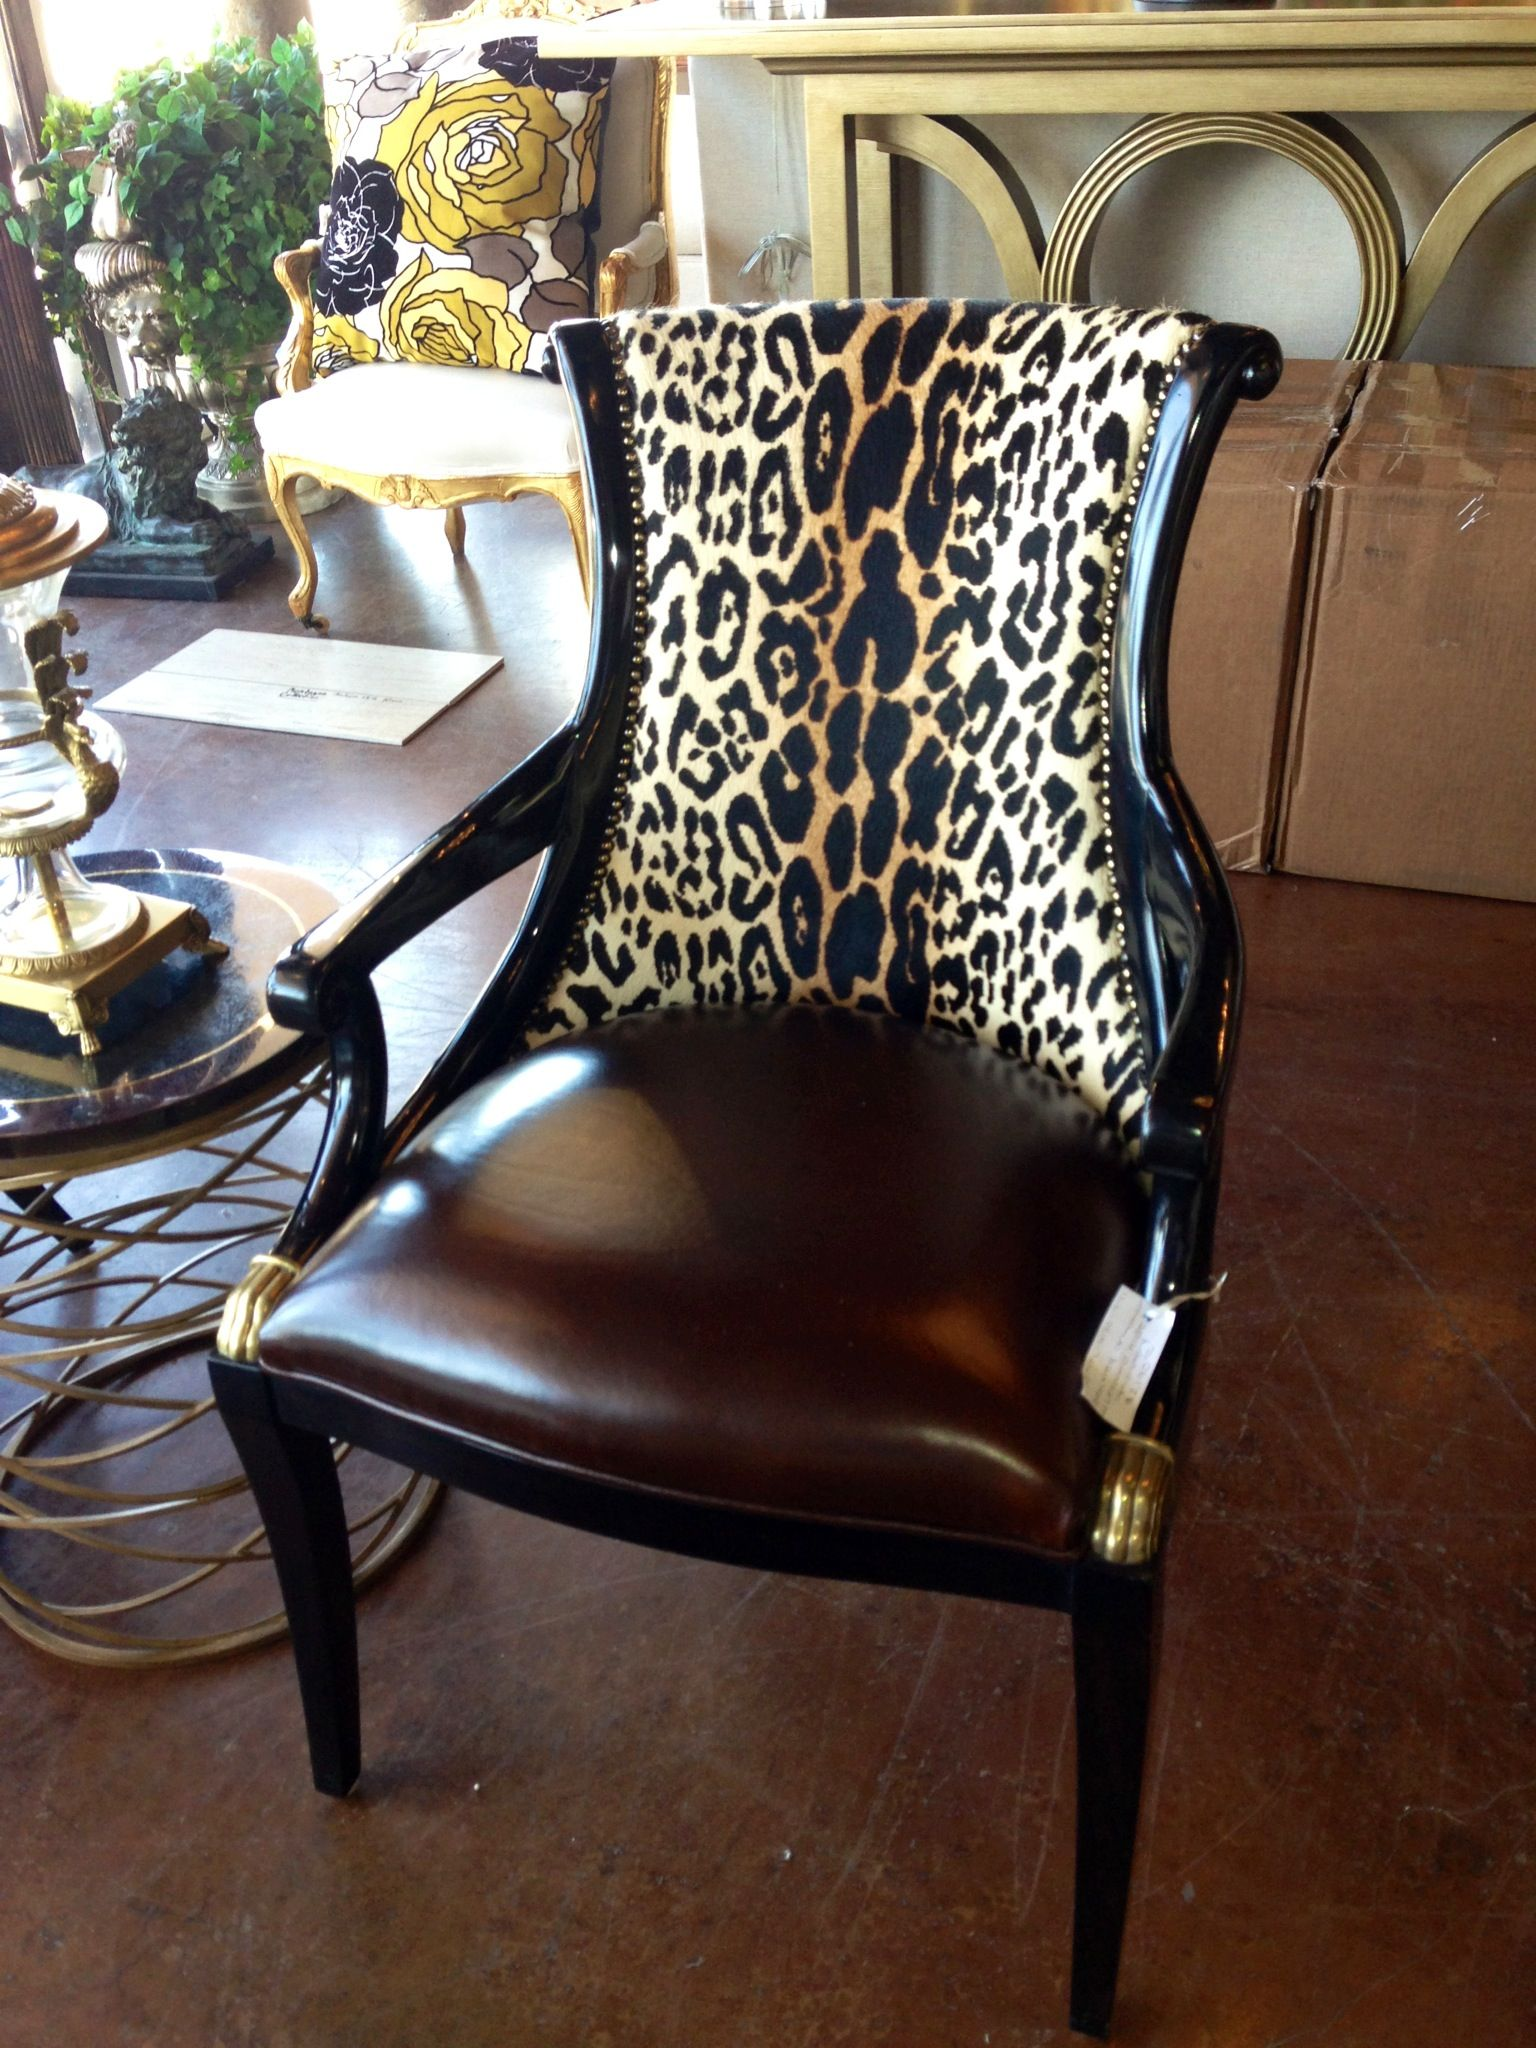 Animal Print Dining Chairs Brittnay Blake Interiors Houston Animal Print Leather